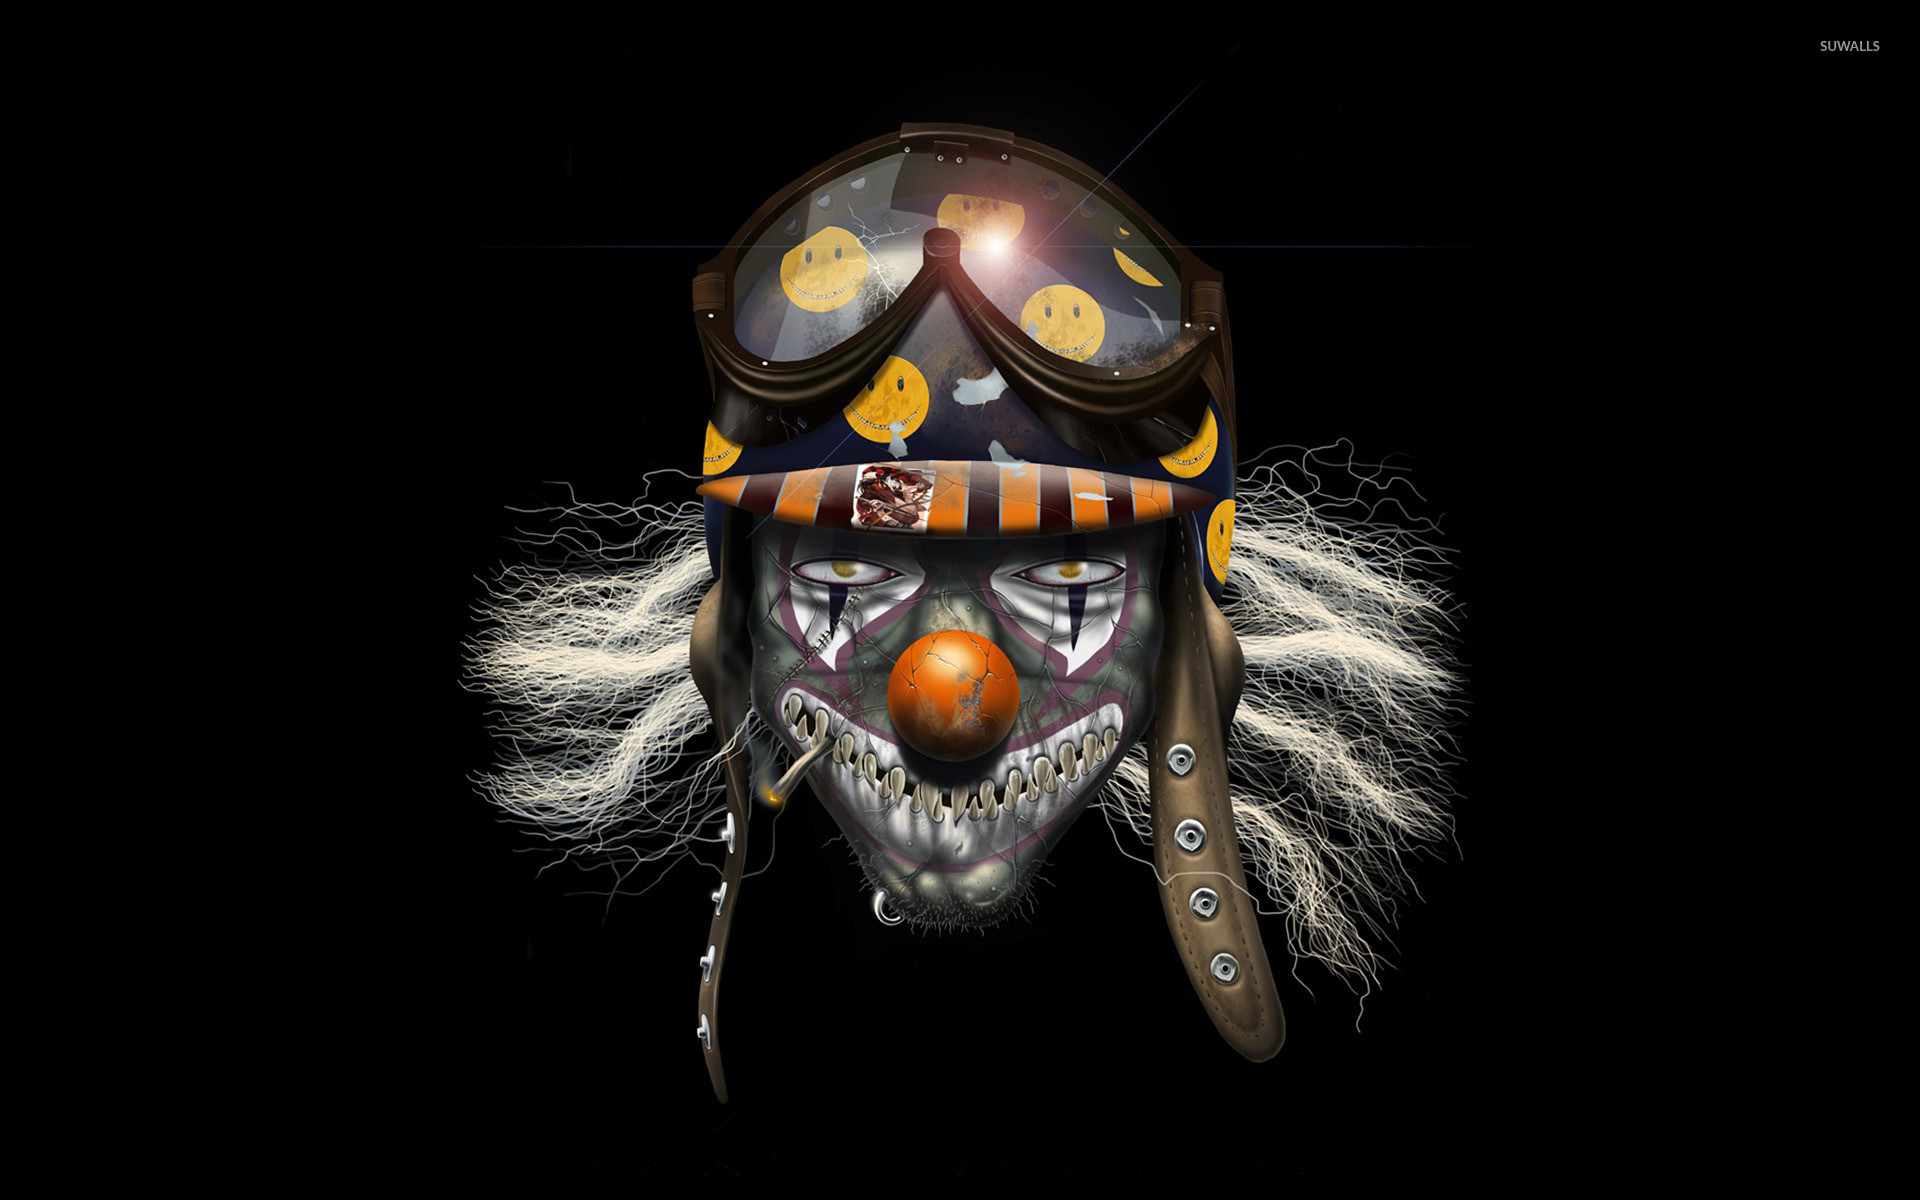 Related image with Scary Clown Wallpapers 25601600 Wallpaper